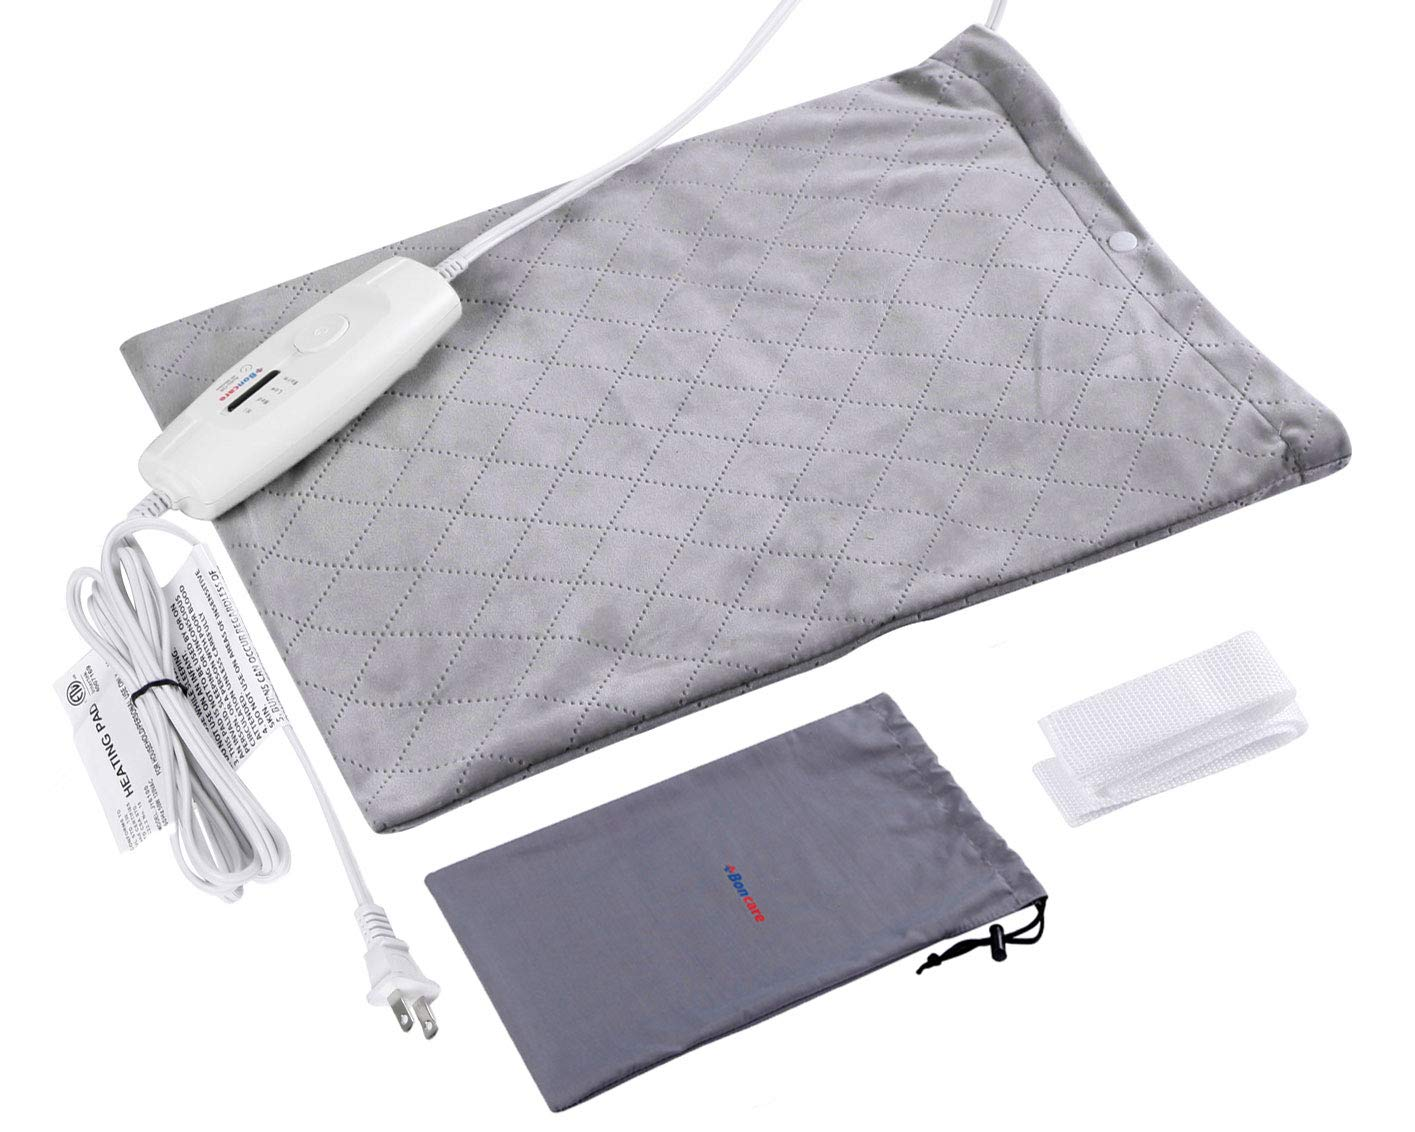 Boncare Heating Pad Dry/Moist Electric Heat Therapy Option for Pain Relief, Heating Pads for Back Pain Auto Shut Off,FDA Approved, 4 Heat Settings, Storage Bag 12'' x 15''Large Size (Light Grey)